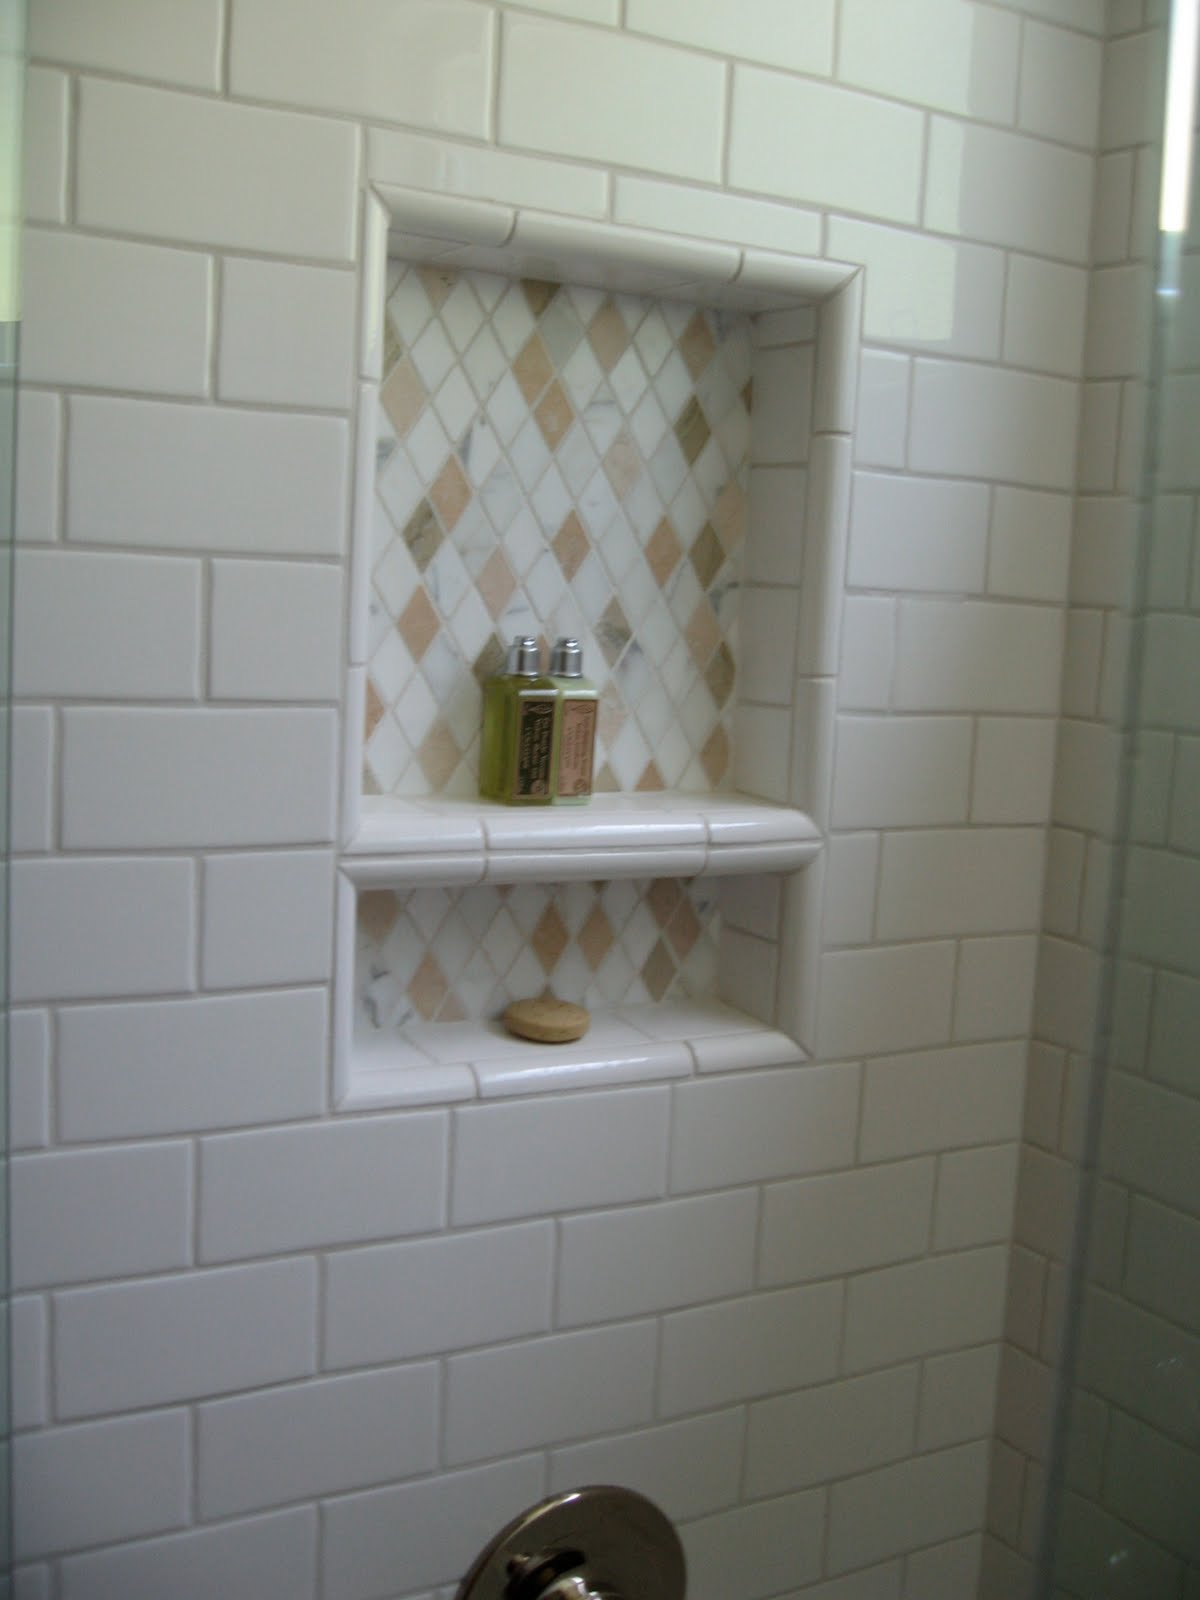 Renovations and remodel secondary bath before and after - Tile shower surround ideas ...